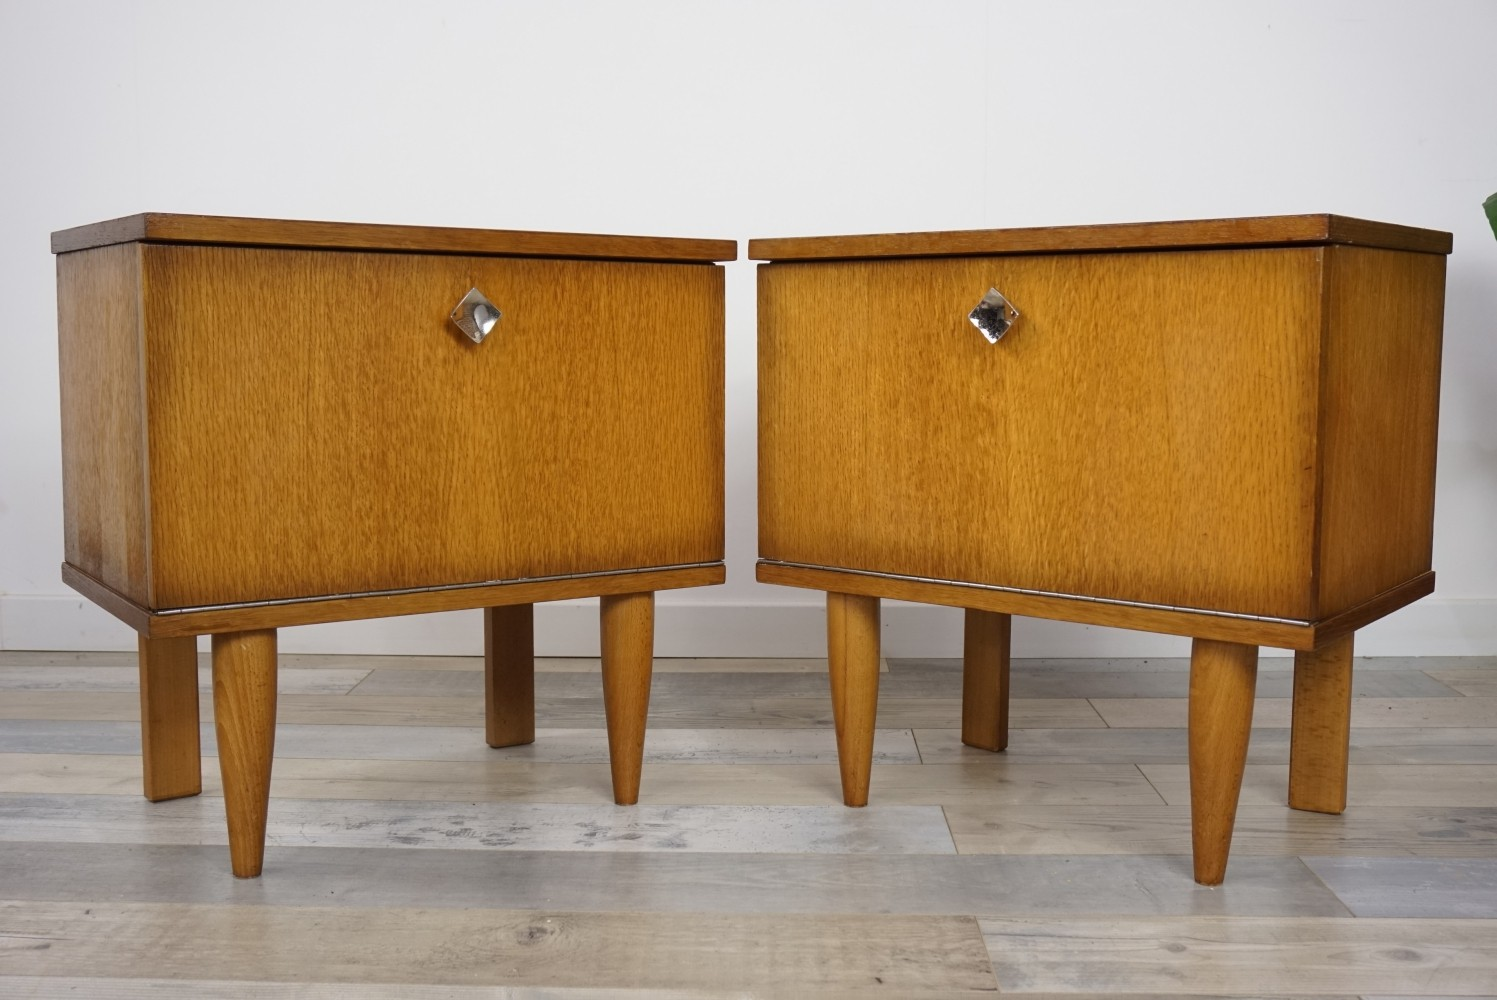 Oak Wooden Pair Of Bedside Tables, 1950s